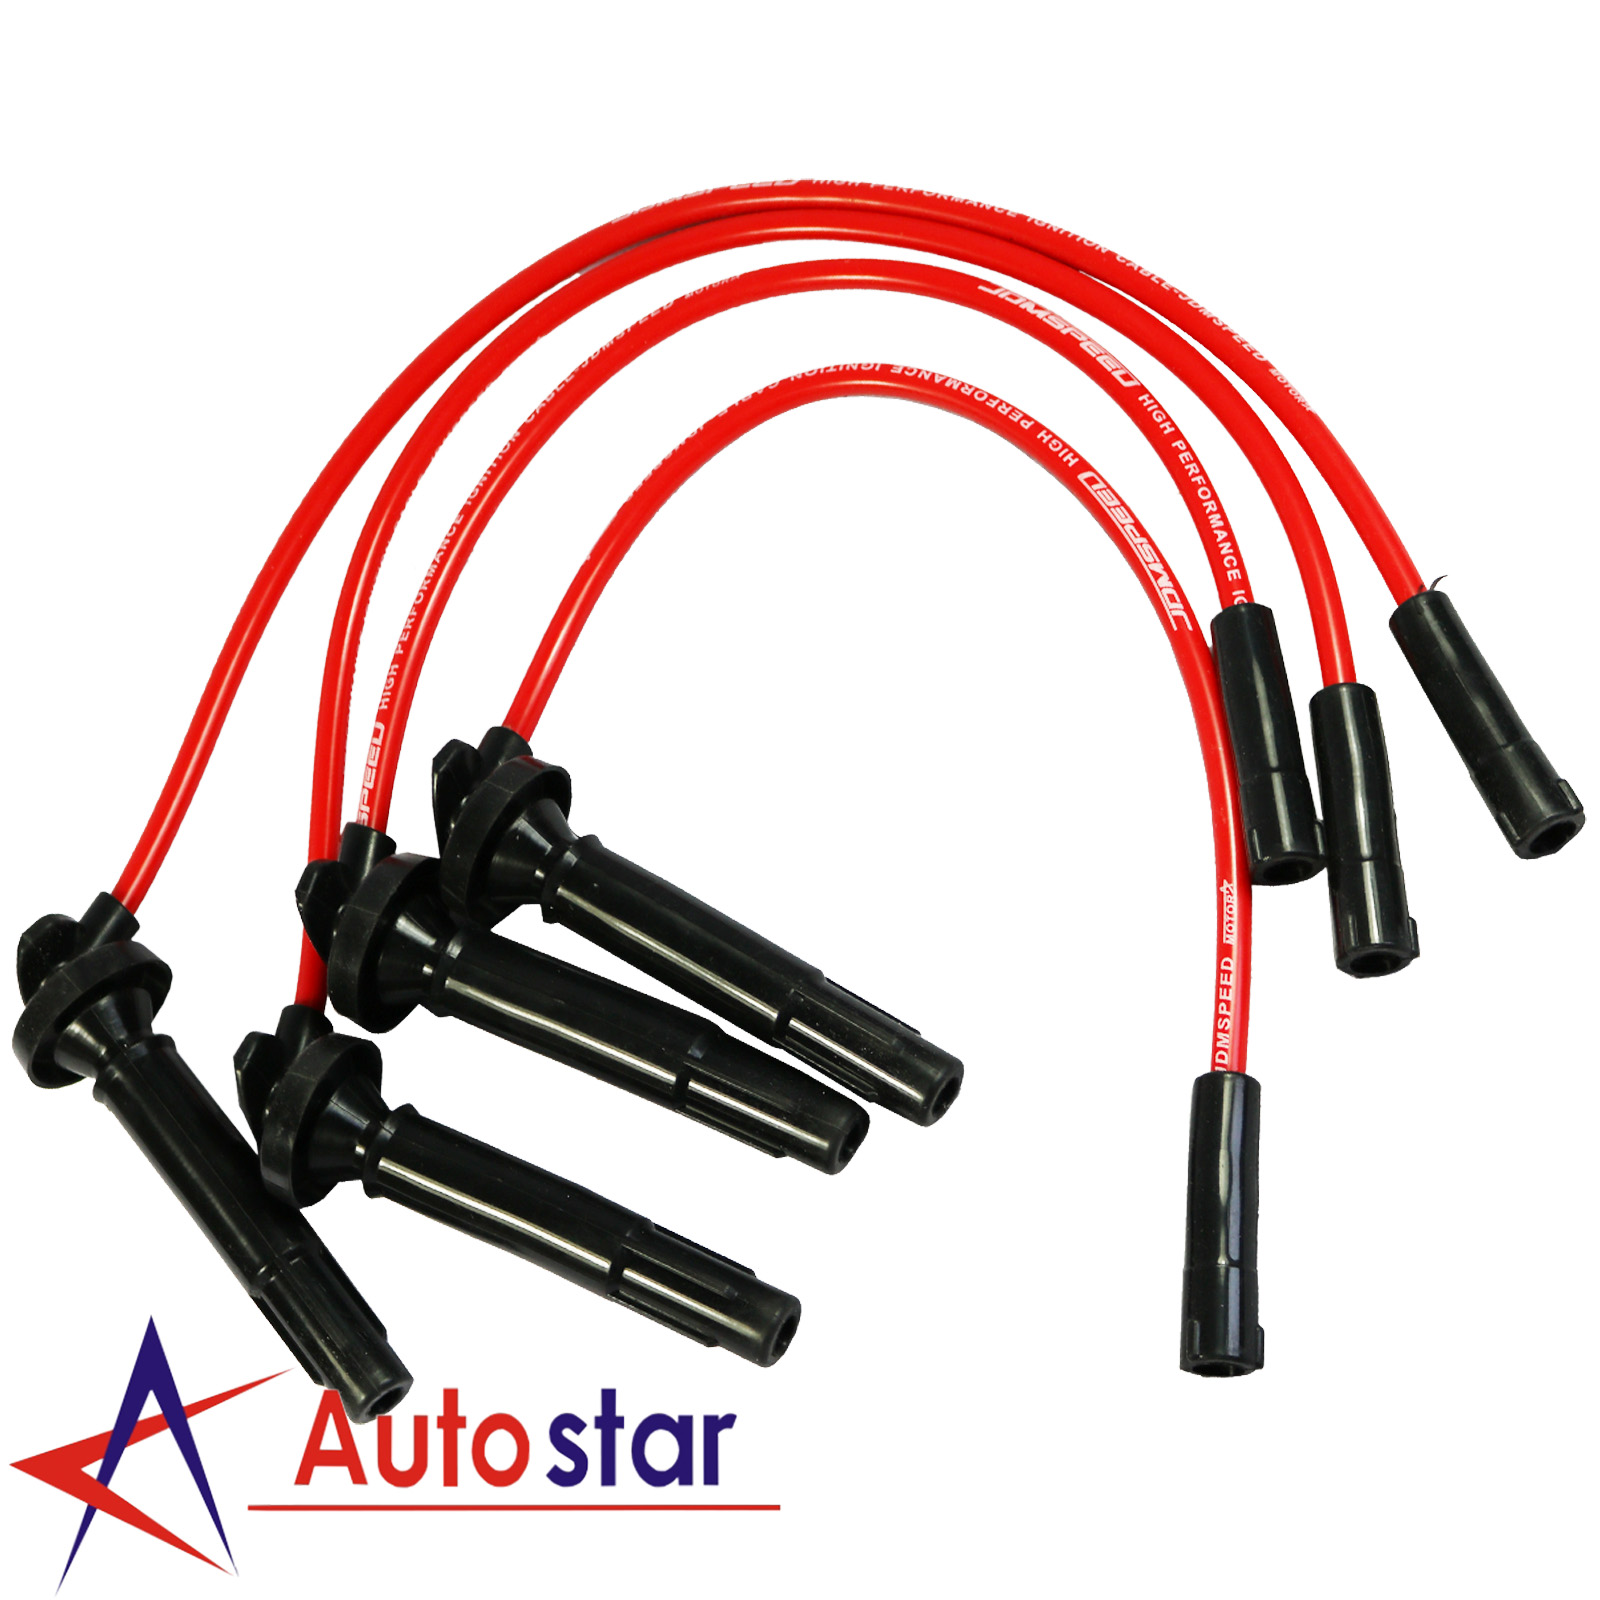 hight resolution of details about jdmspeed spark plug wires for subaru forester baja saab impreza legacy outback